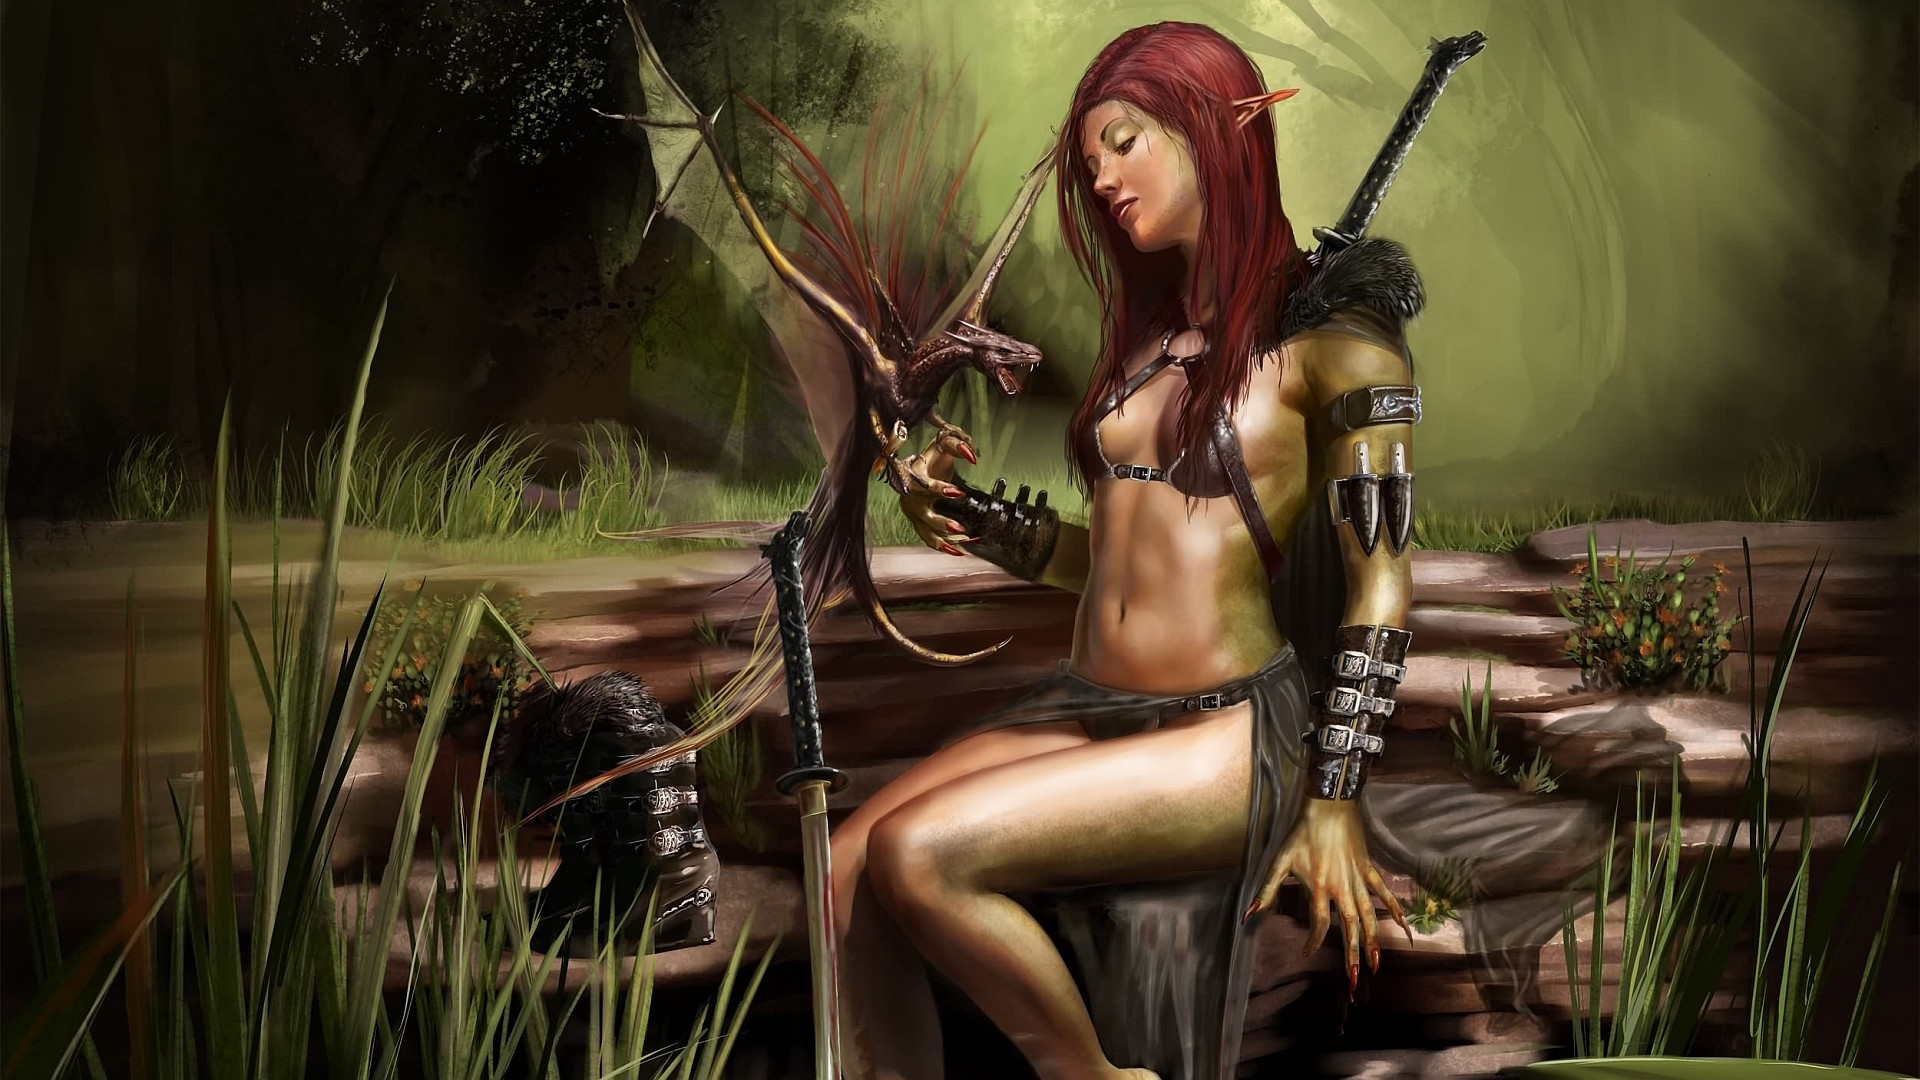 General-1920x1080-digital-art-fantasy-art-women-dragon-nature-warrior-elves-sword-redhead-katana-wallpaper-wpc9005464